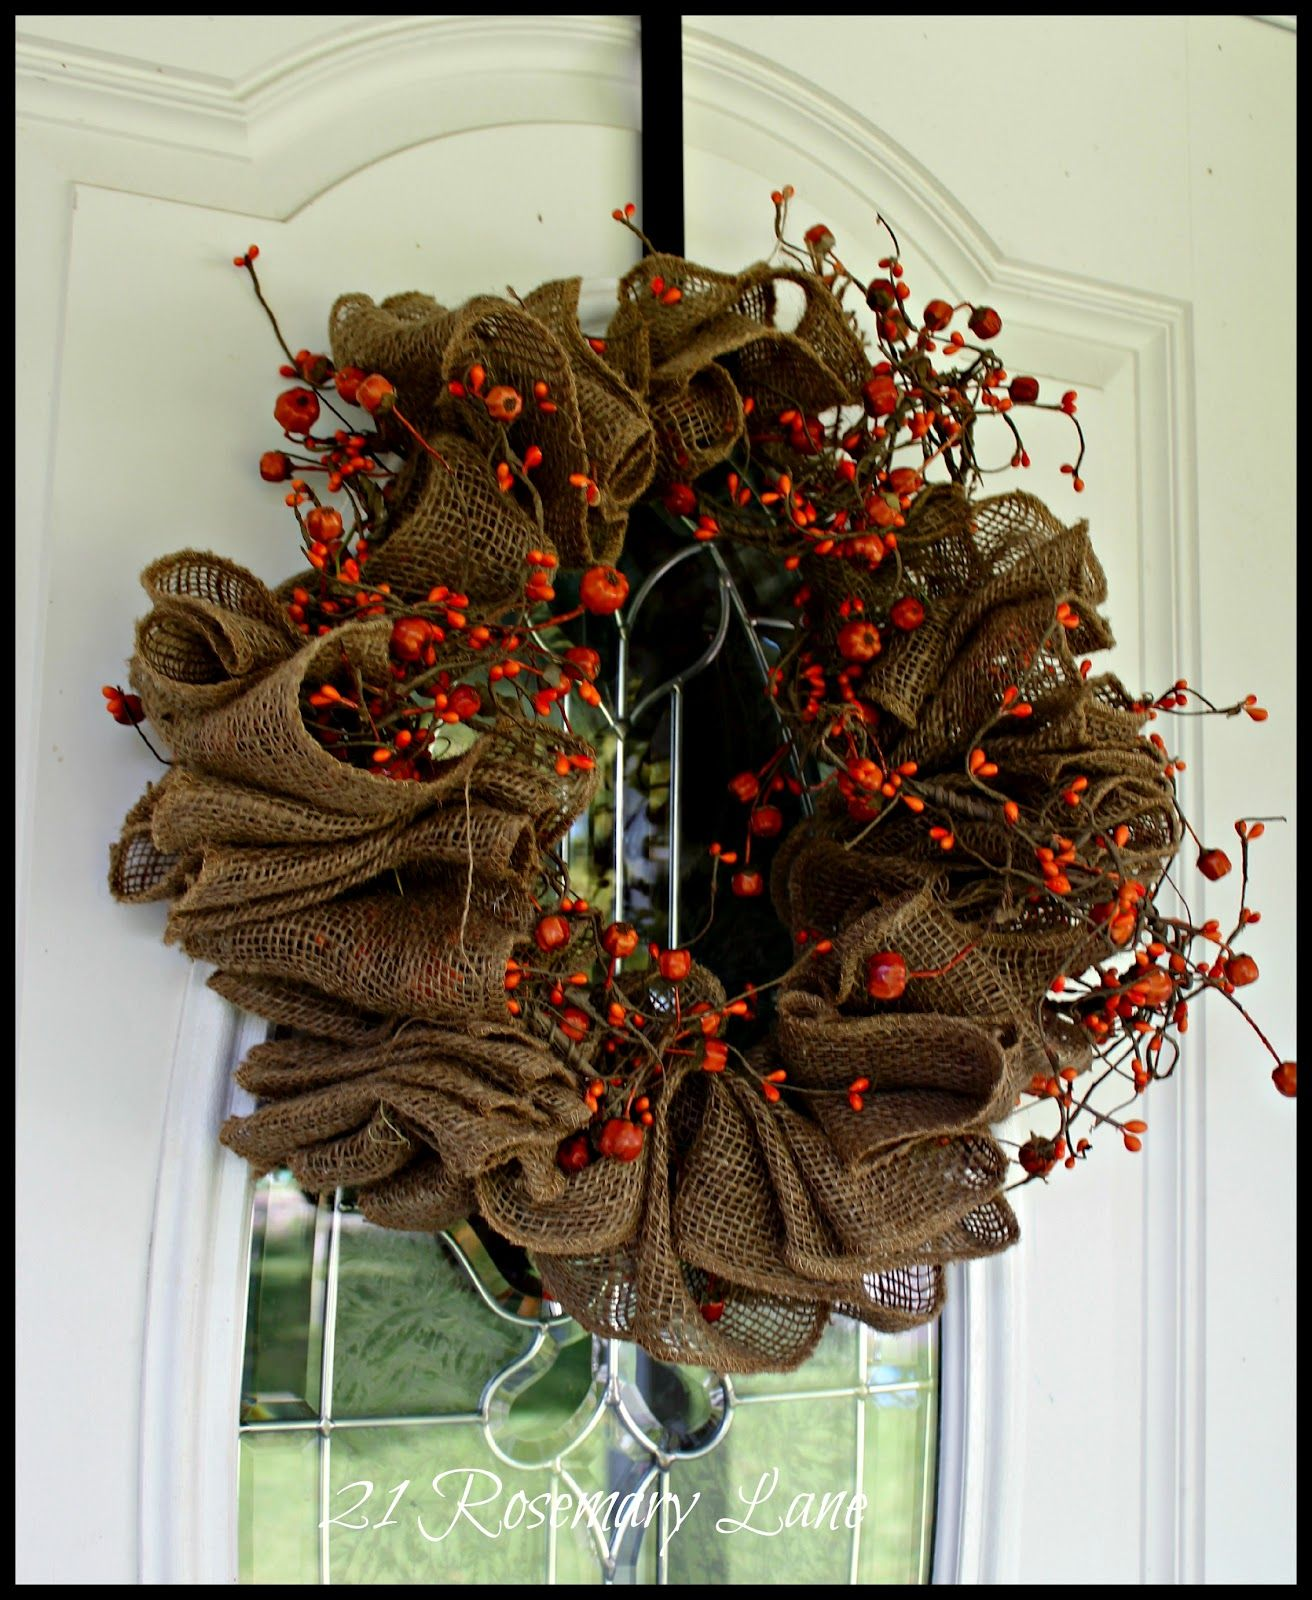 21 rosemary lane easy fall burlap wreath instructions use for Burlap ribbon craft ideas